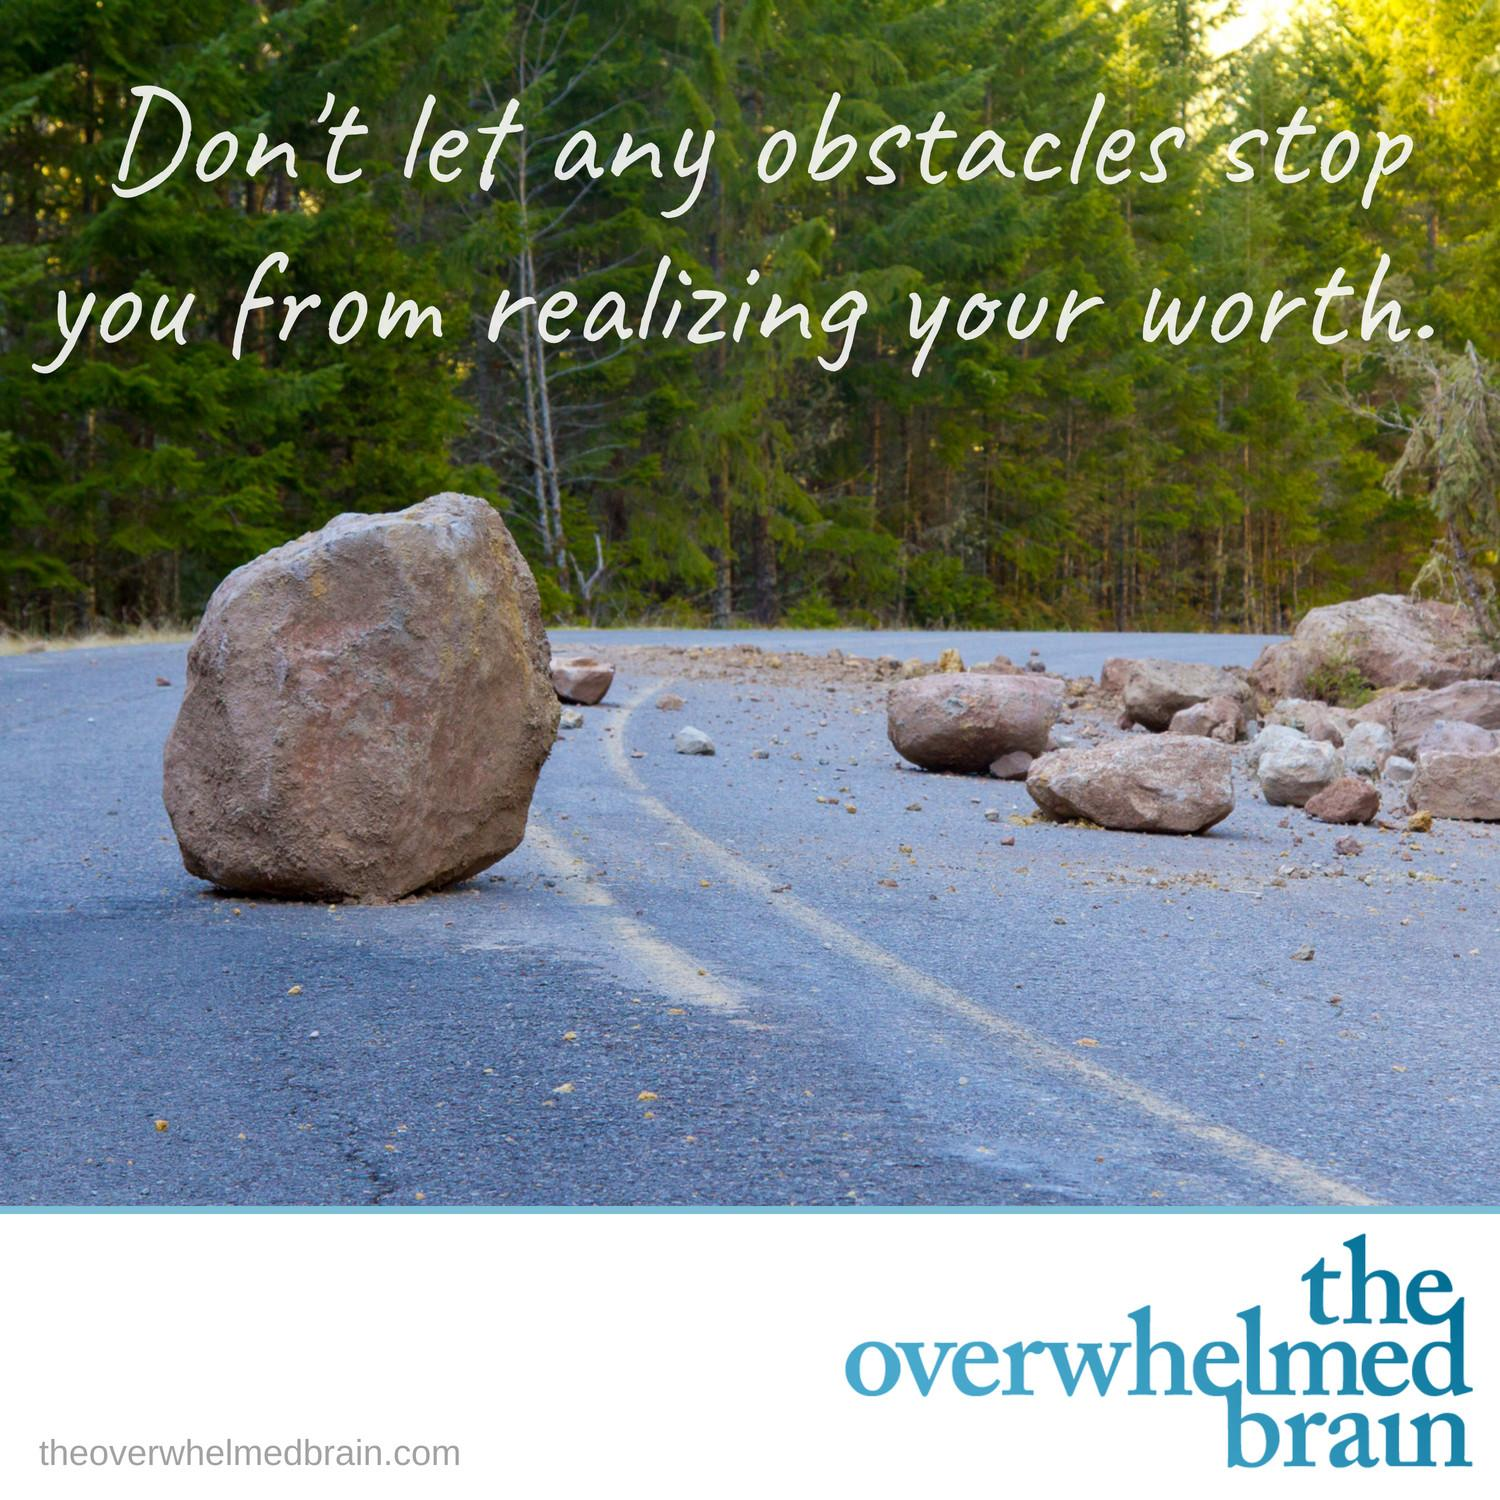 The obstacles that block the path to self-worth and happiness